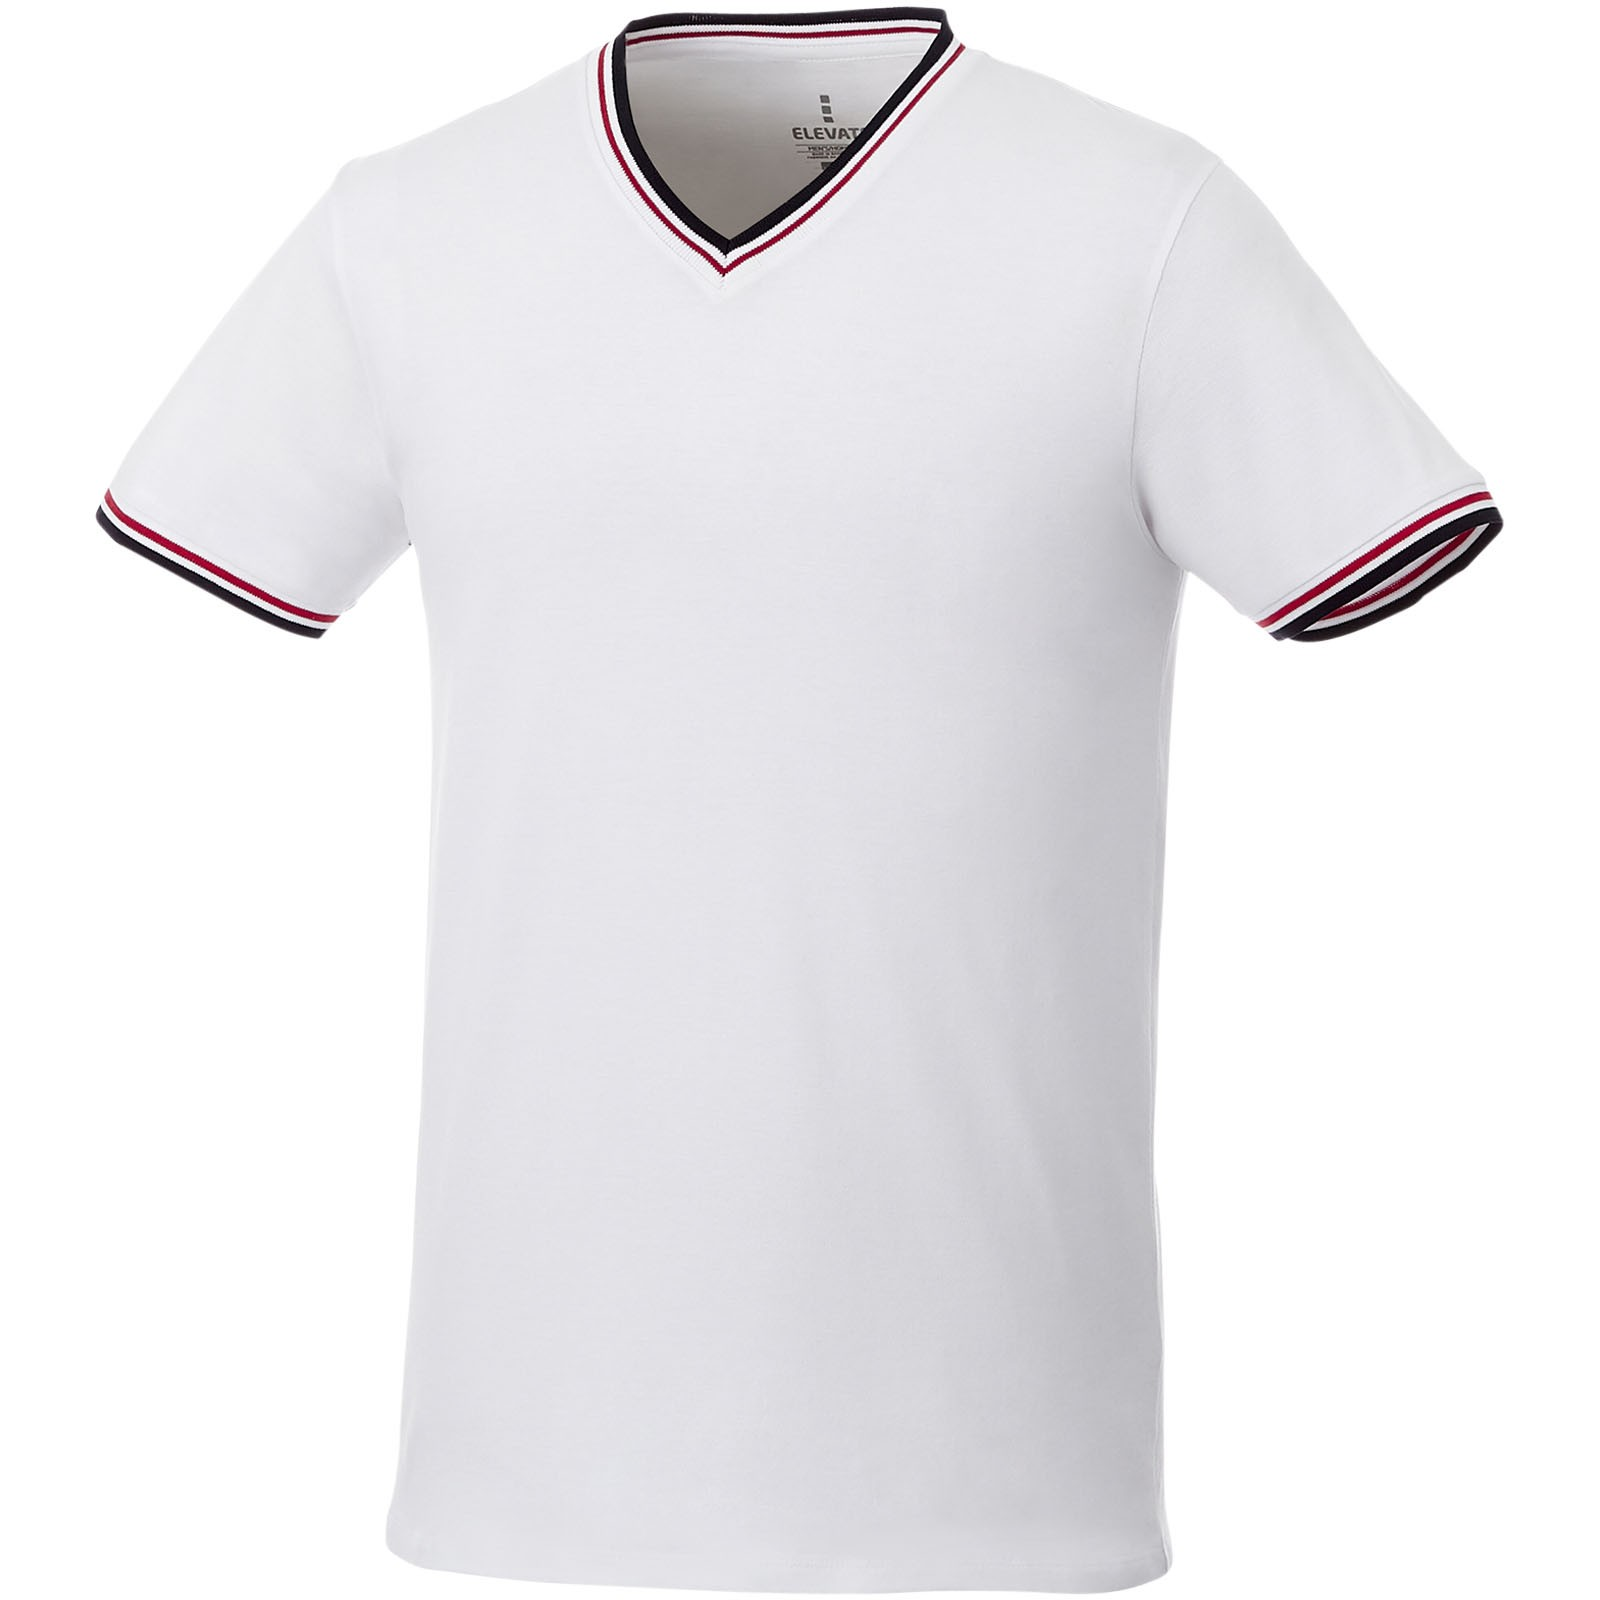 Elbert short sleeve men's pique t-shirt - White / Navy / Red / XS